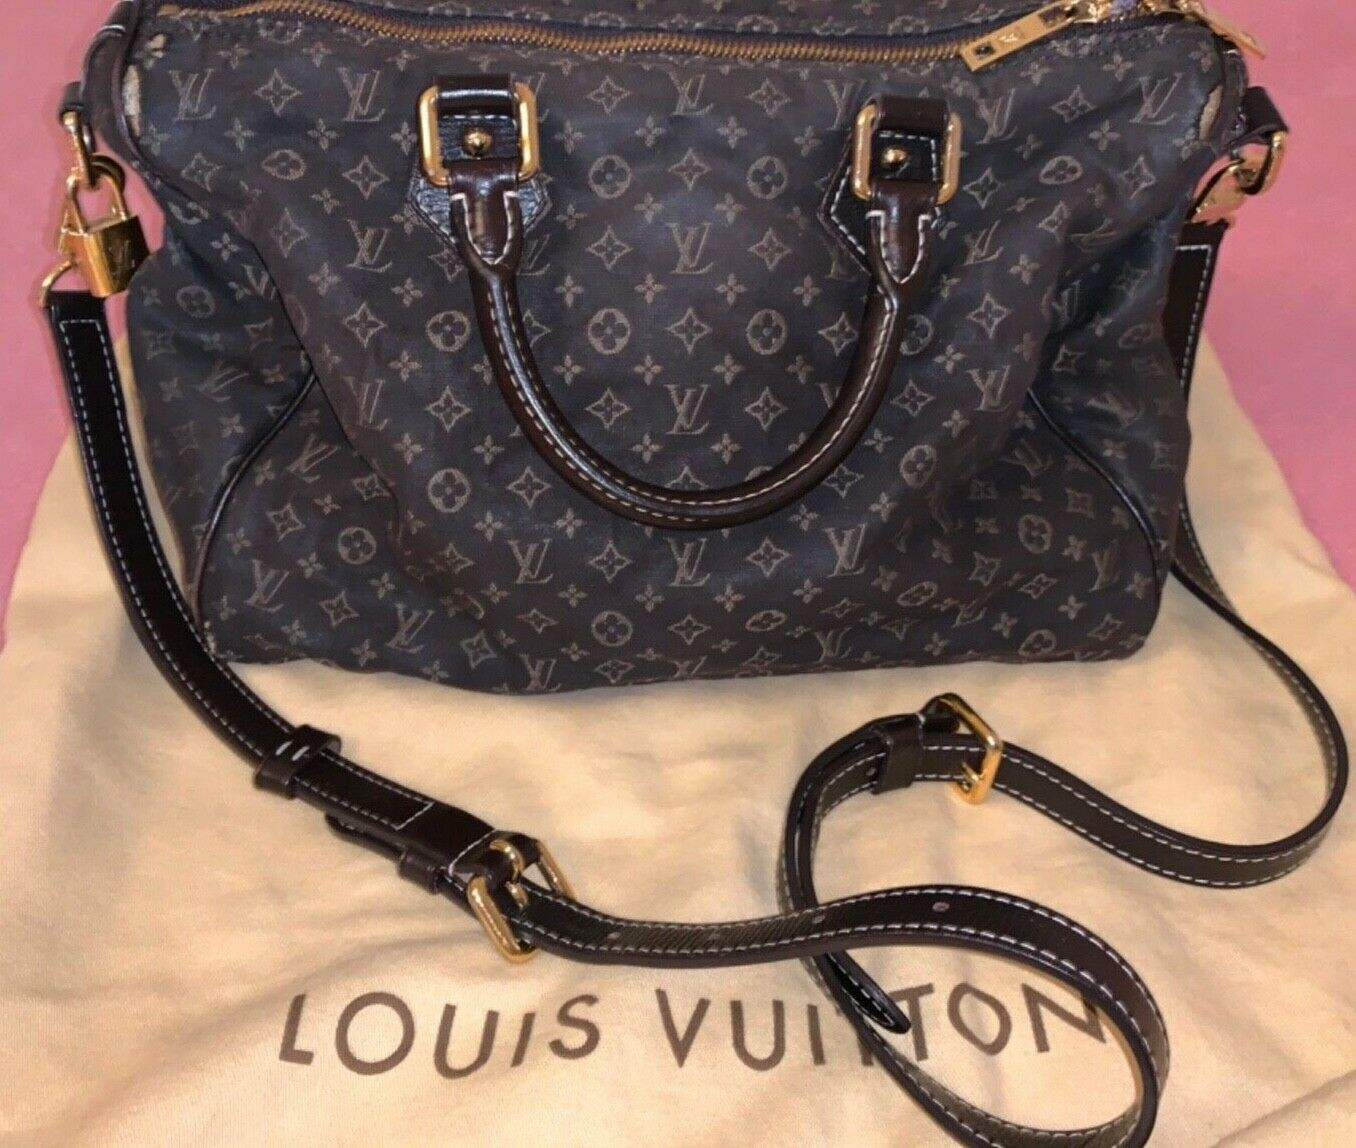 Original Louis Vuitton Tasche Damen - 599.00,Kaufpreis 599,datum 01.07.2020 22:12:37,Website ebay.de